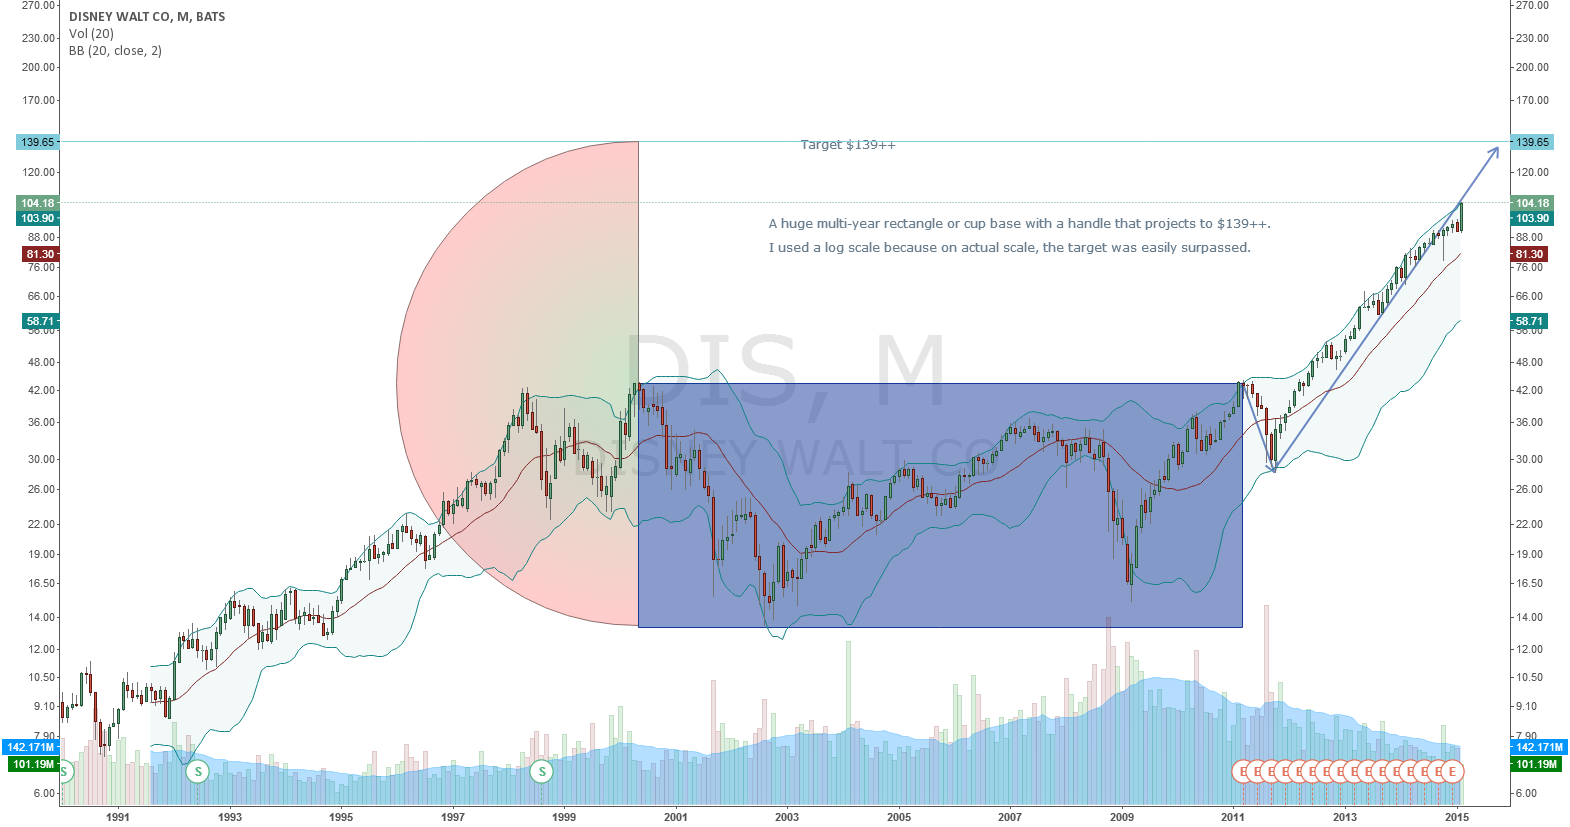 DIS-A huge multi-year rectangle or cup base with handle